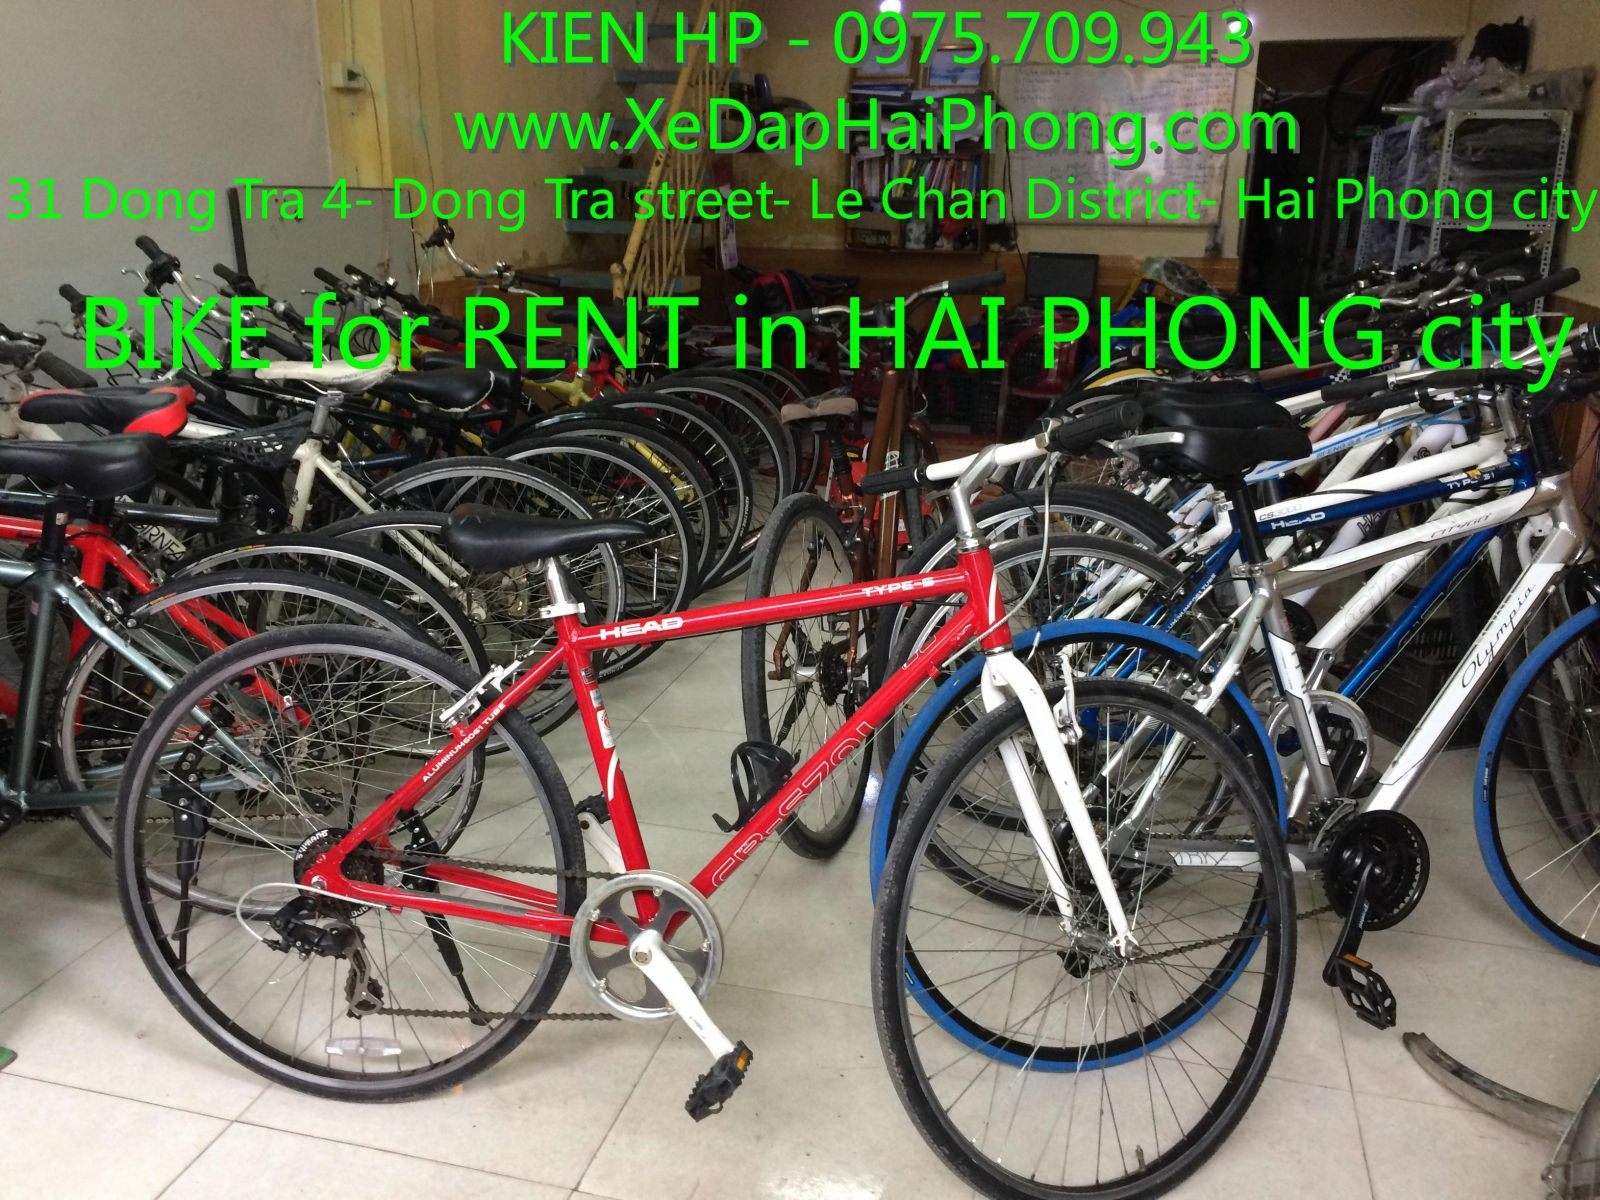 bike for rent in hai phong city